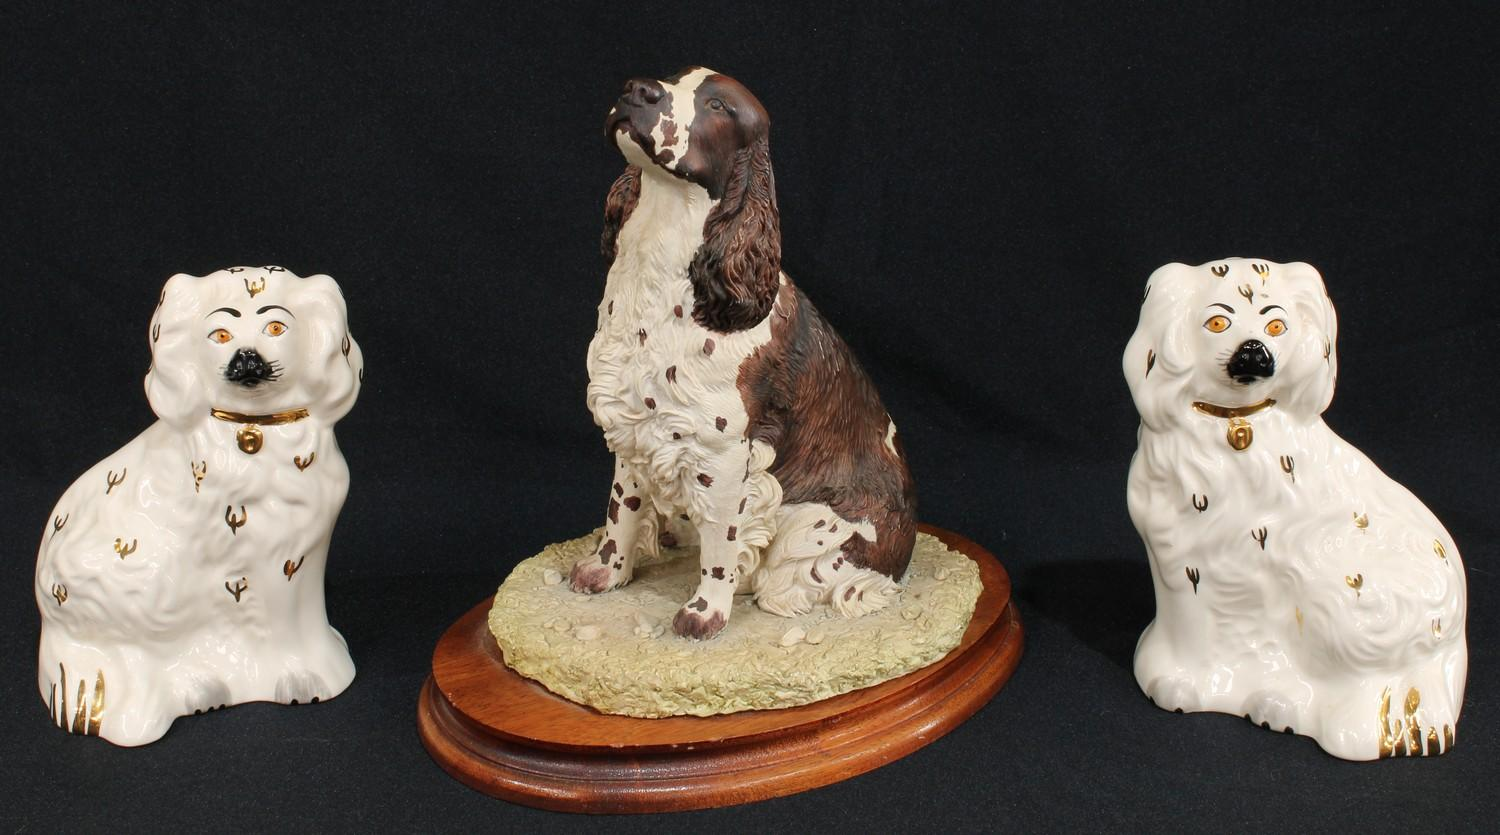 A Border Fine Arts resin model of a spaniel, by Margaret Turner, signed, dated 1993, oval wooden